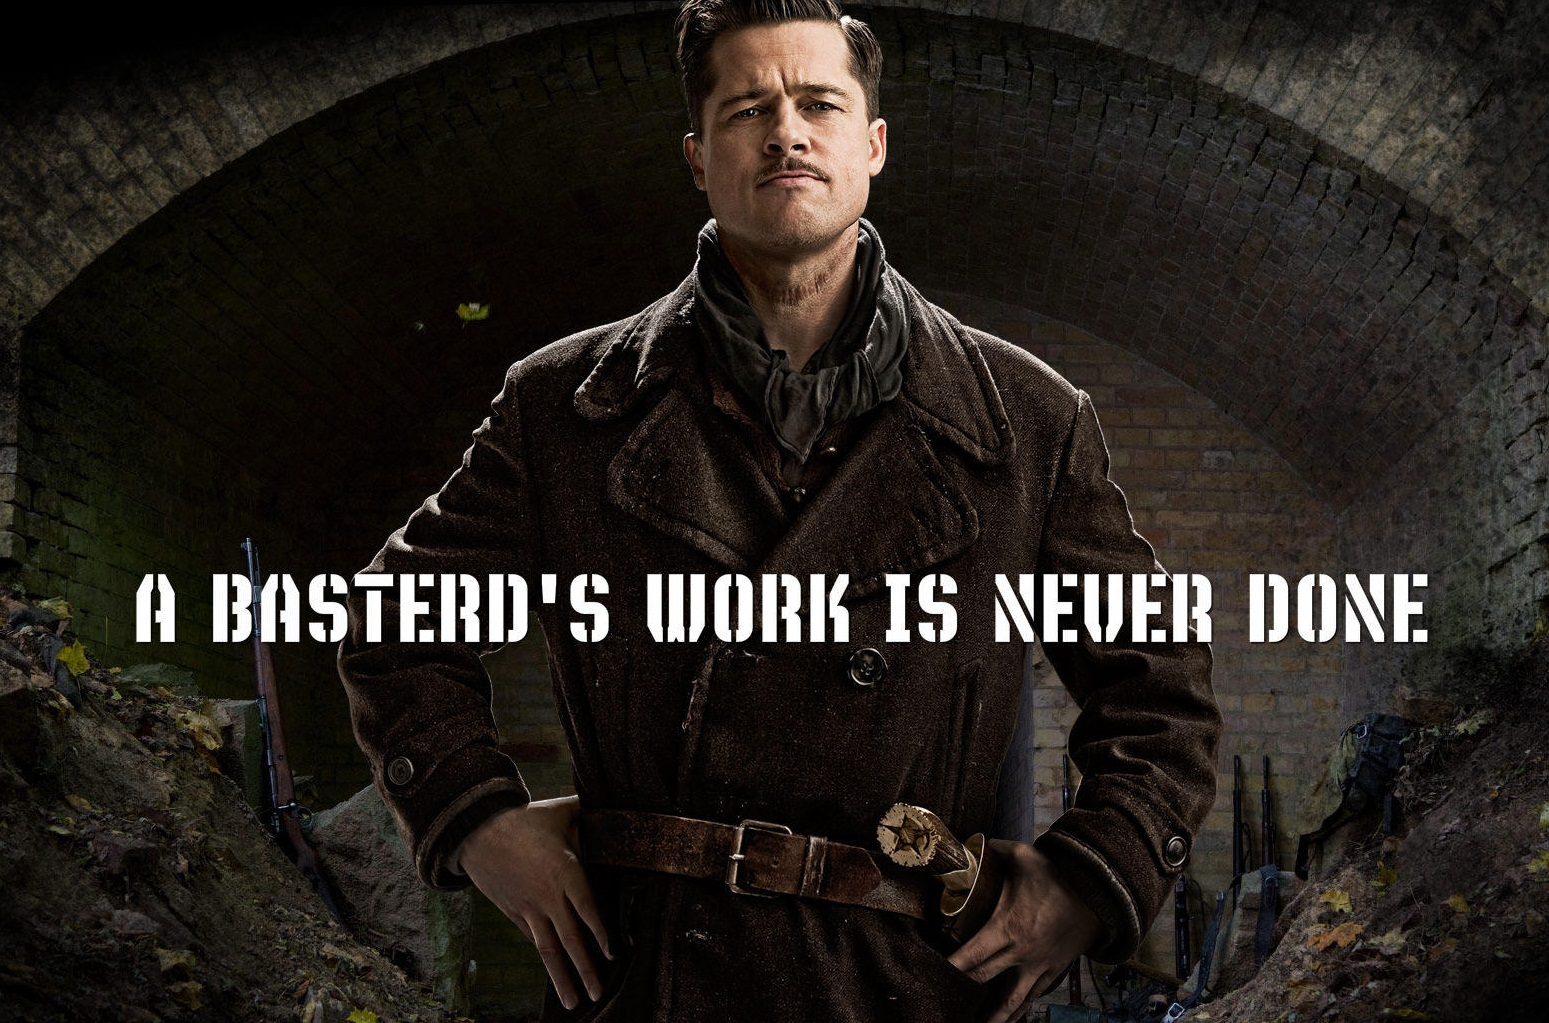 Inglorious Basterds as one of the best Hollywood films since 1990 (Mostly 2000)